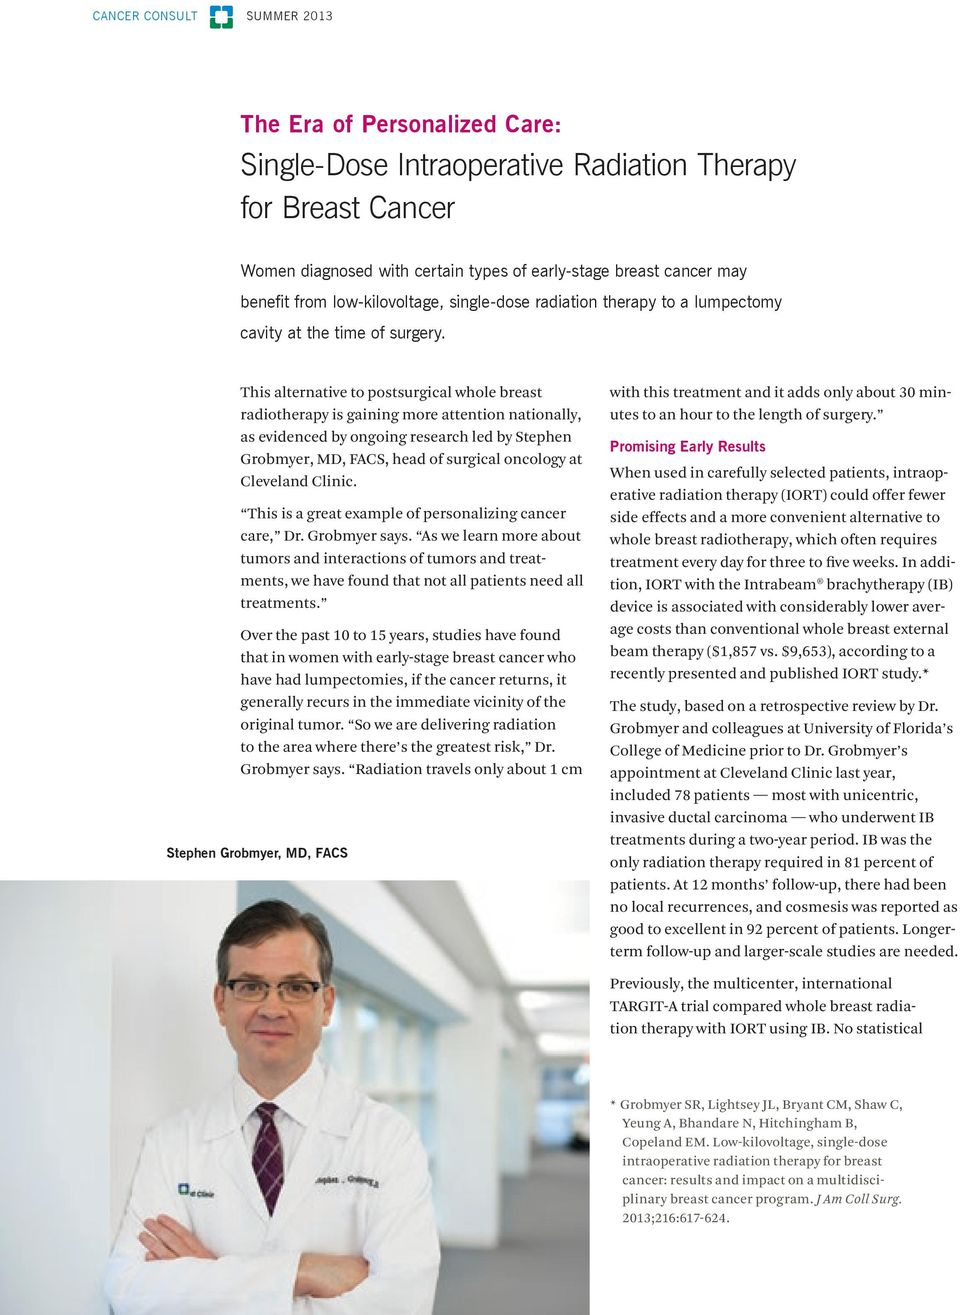 This alternative to postsurgical whole breast radiotherapy is gaining more attention nationally, as evidenced by ongoing research led by Stephen Grobmyer, MD, FACS, head of surgical oncology at